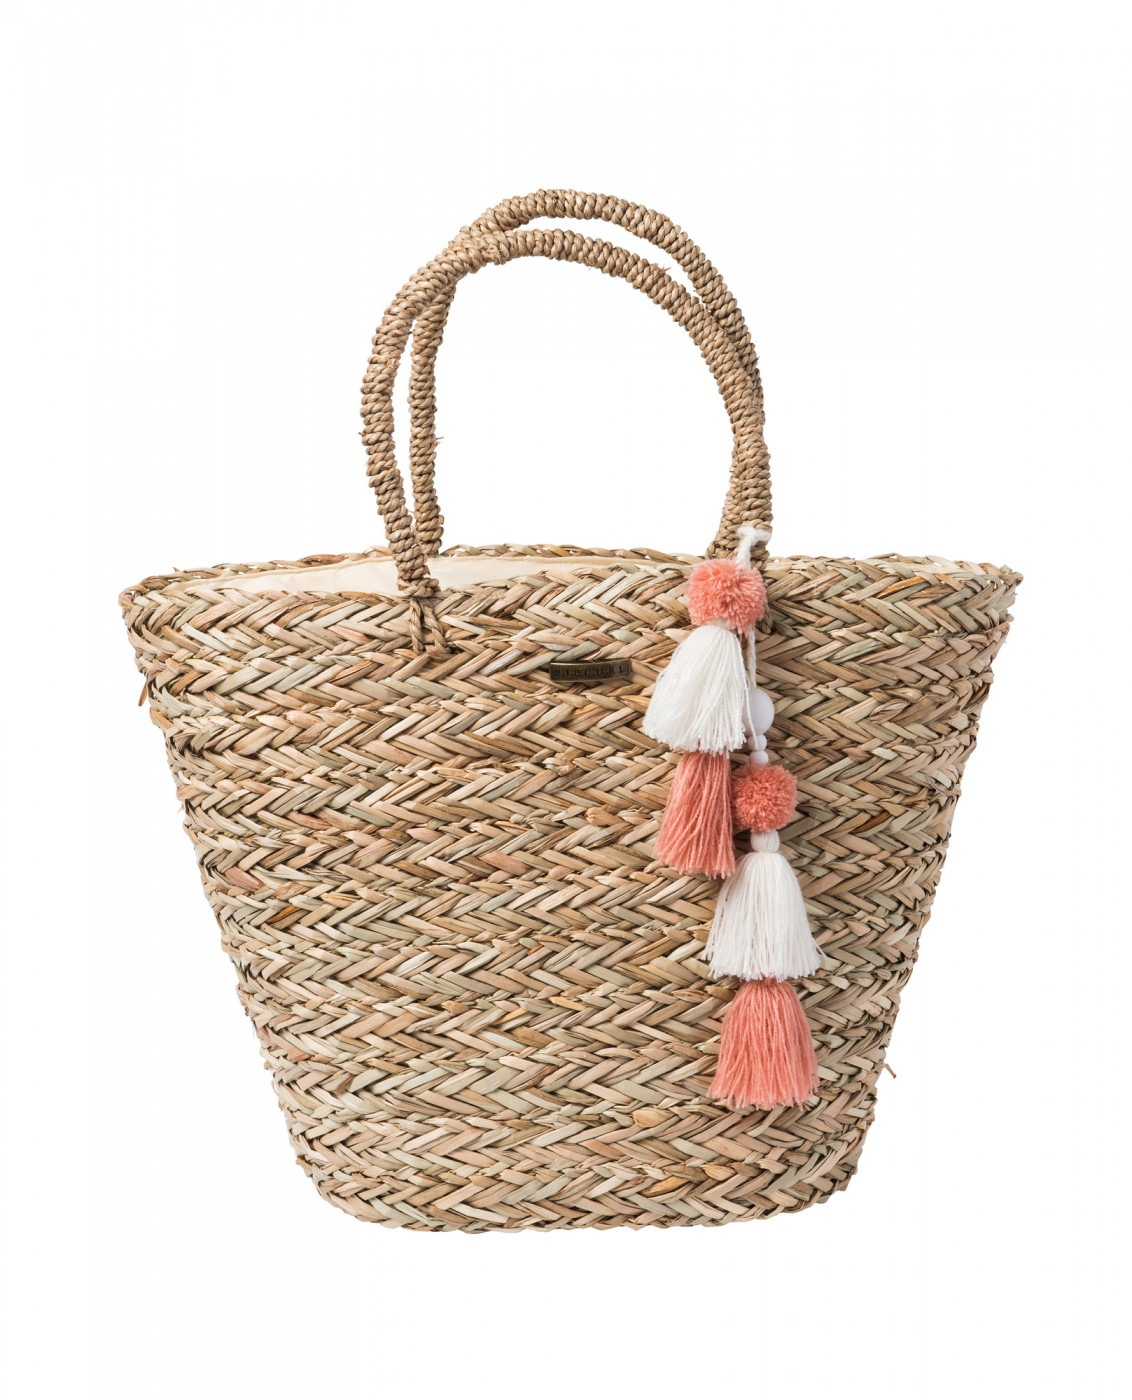 Women's Handbag Rip Curl SHOULDER BAGS SHORELINES STRAW BEACH BAG